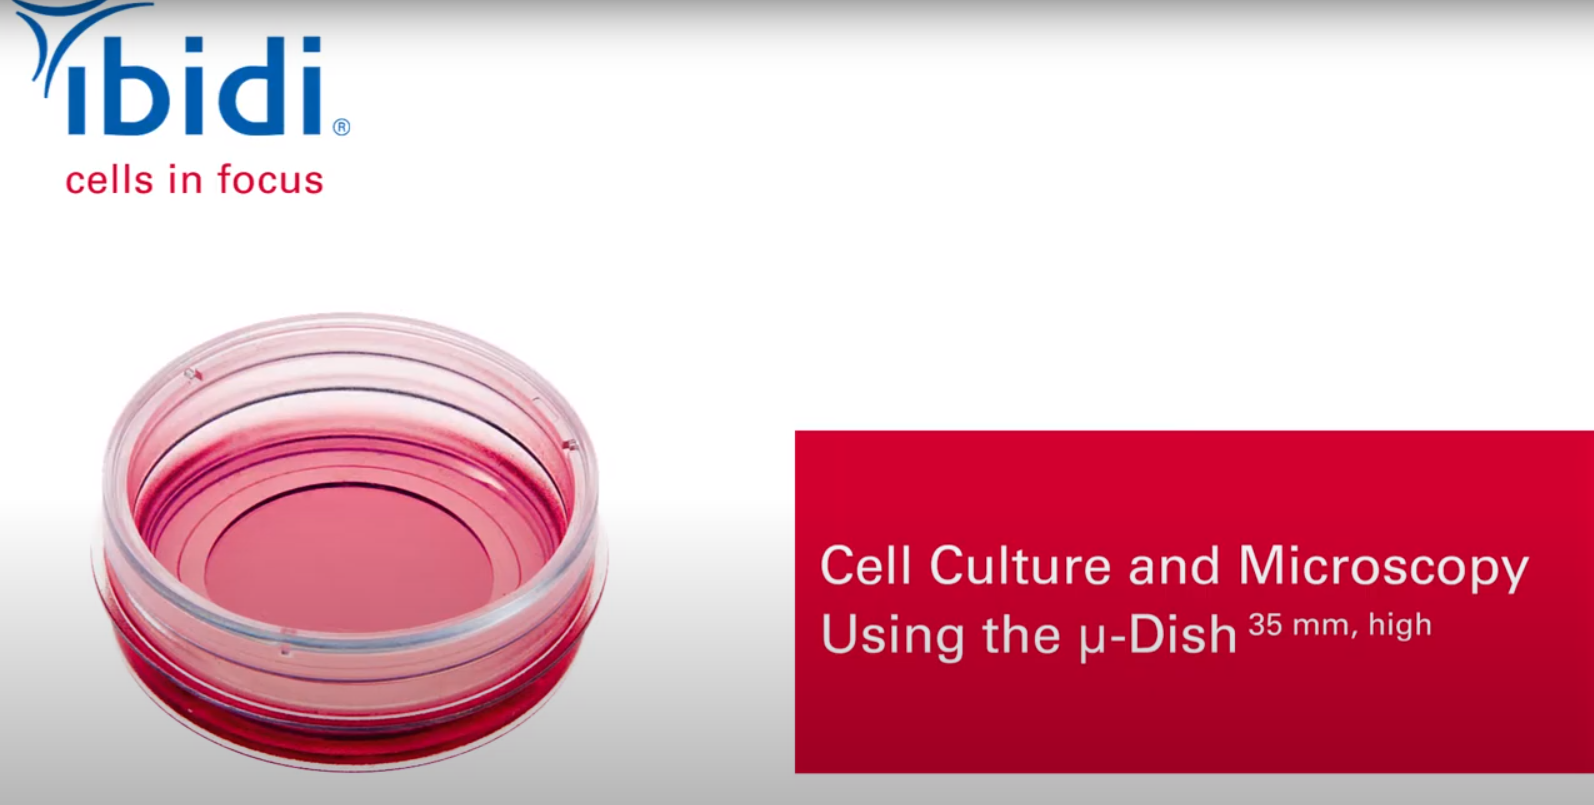 Cell Culture and Microscopy Using the µ-Dish 35 mm, high